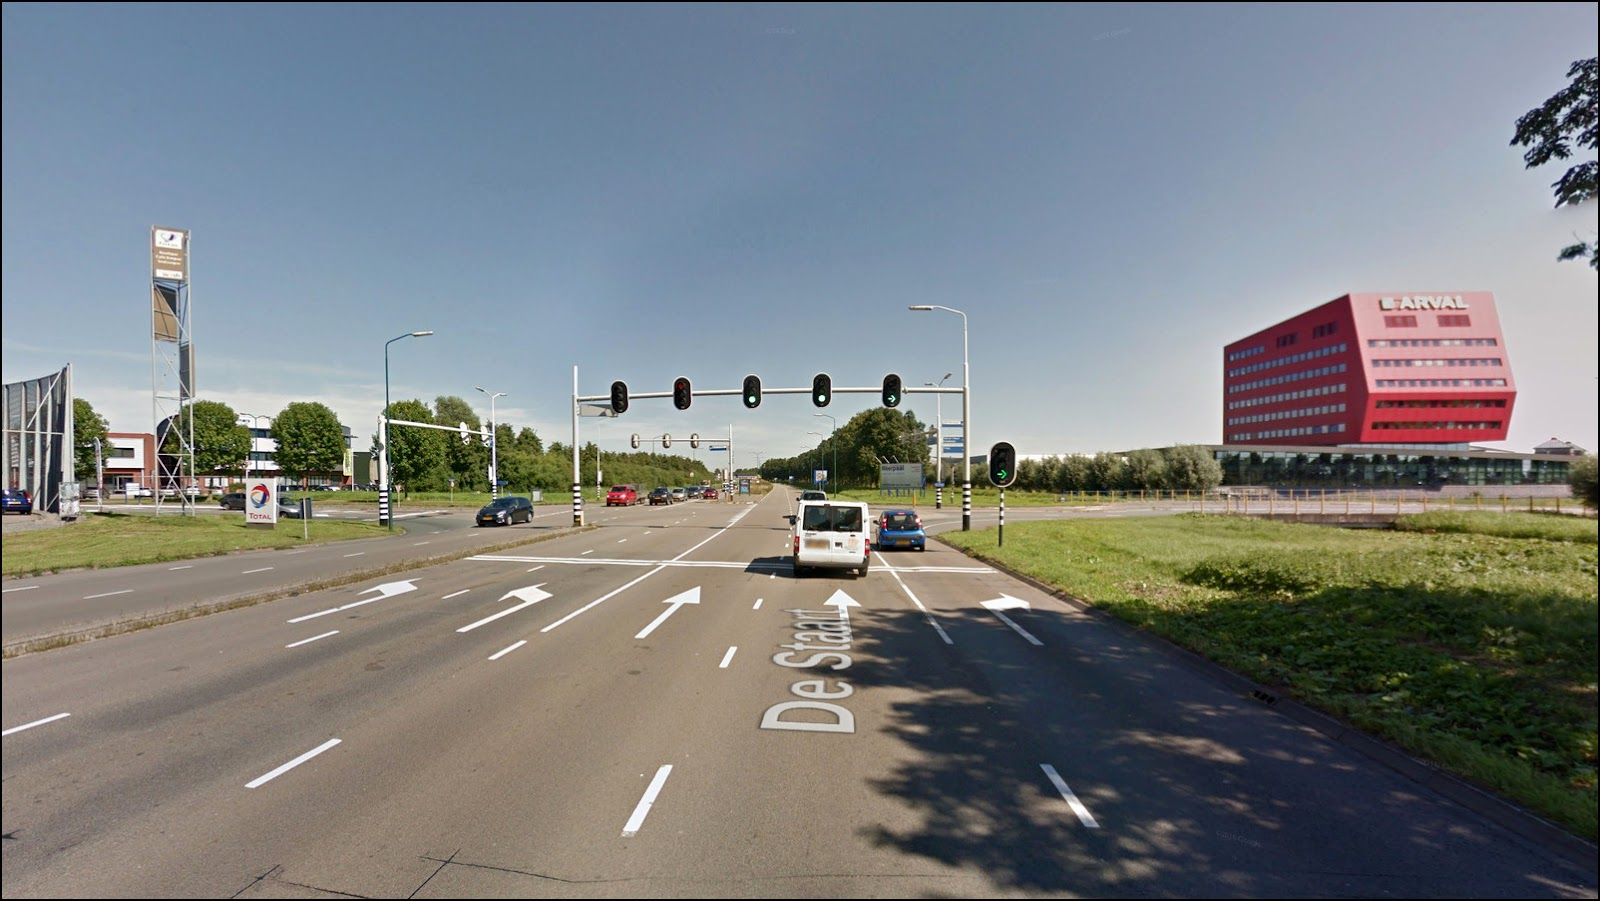 The crossing with the smart traffic-light. Photo from Google Street View.